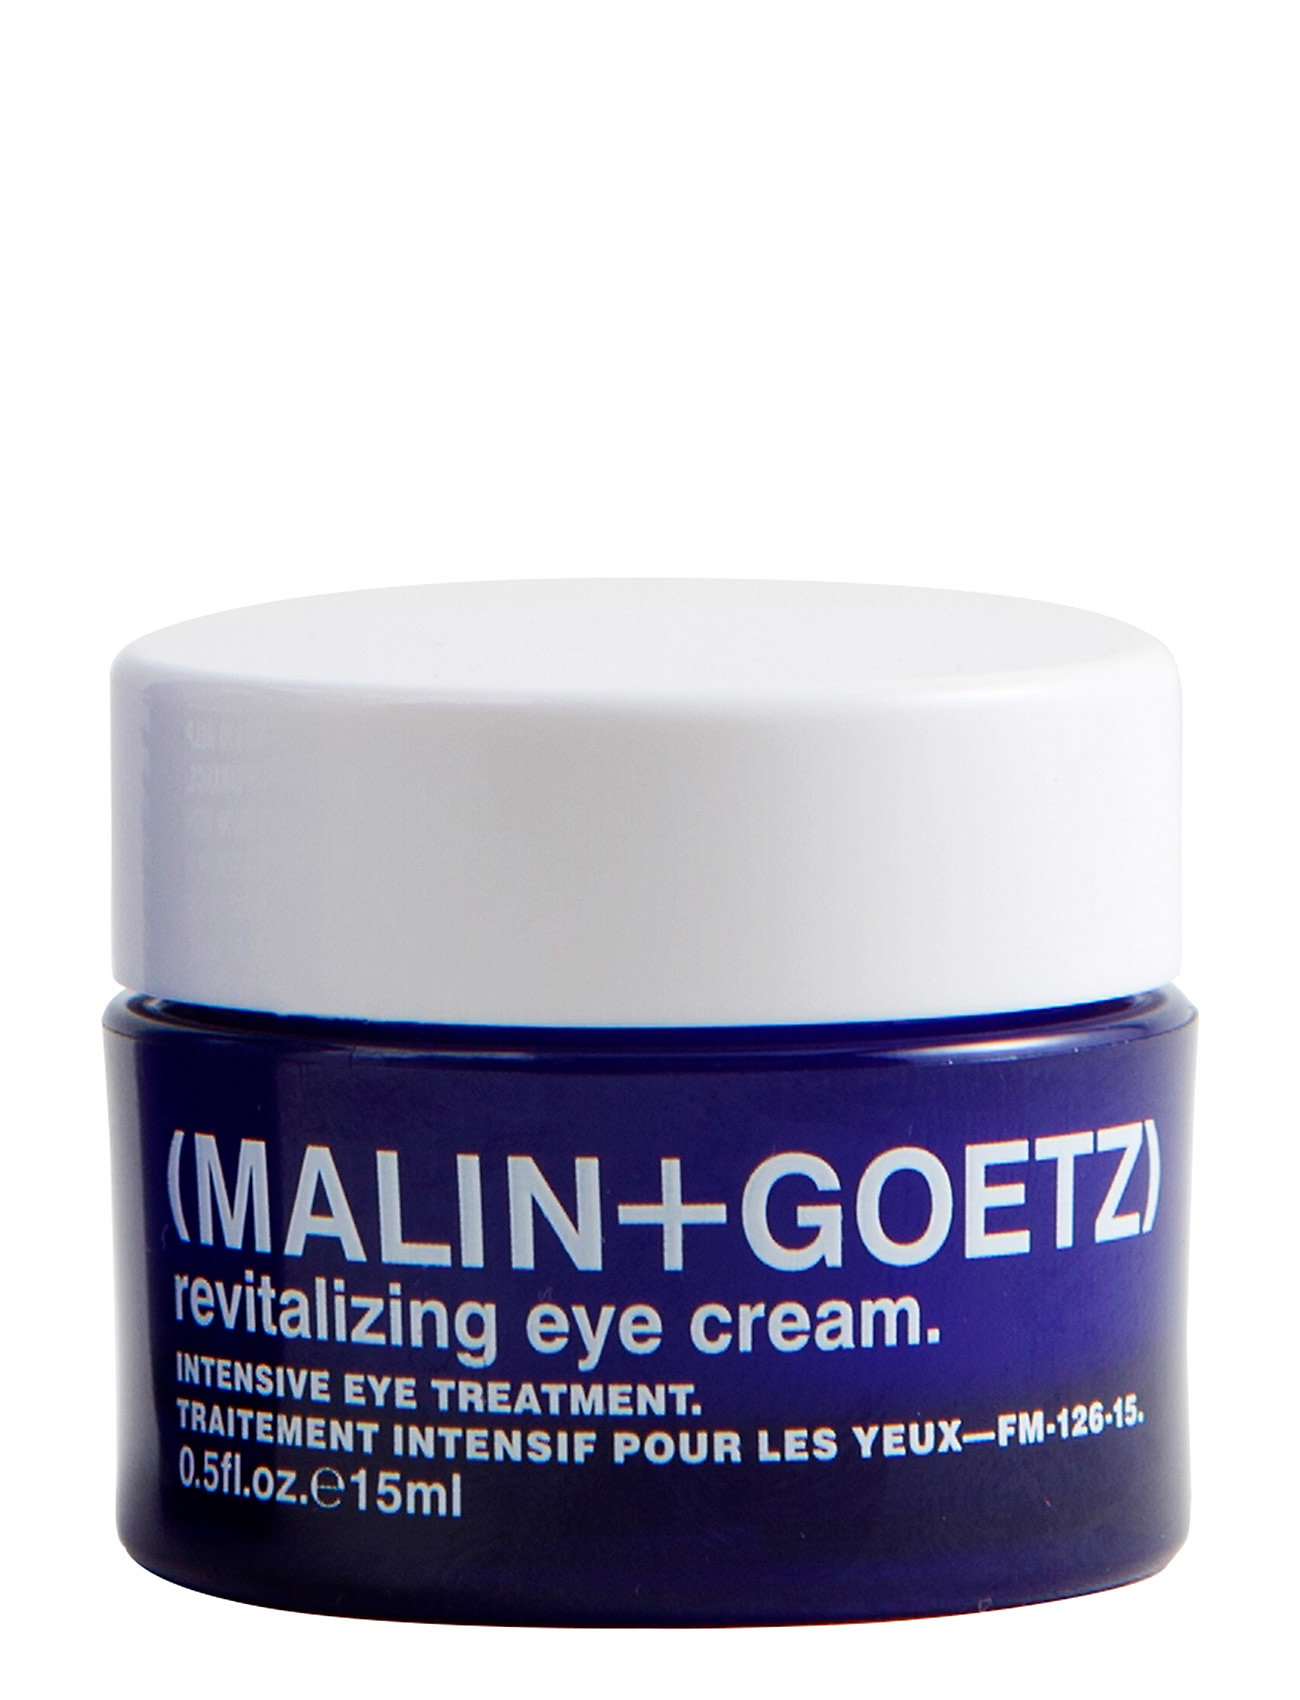 malin+goetz – Revitalizing eye cream på boozt.com dk